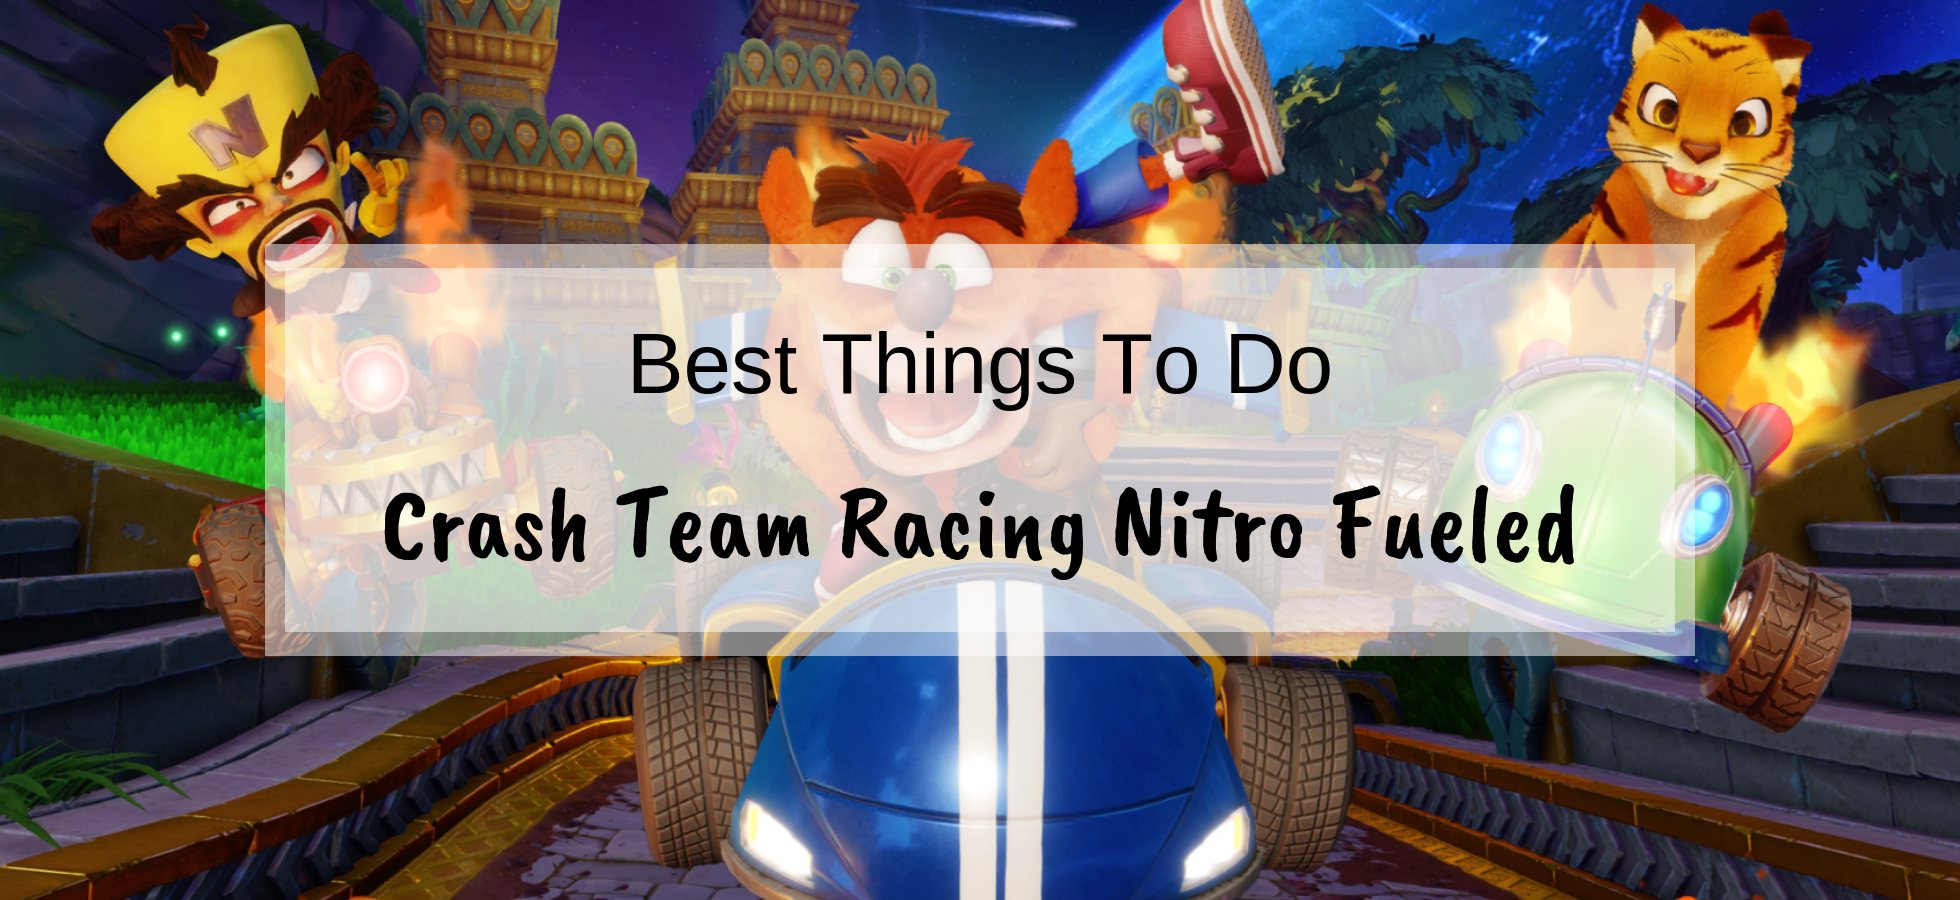 The 9 best things to do in Crash Team Racing Nitro Fueled